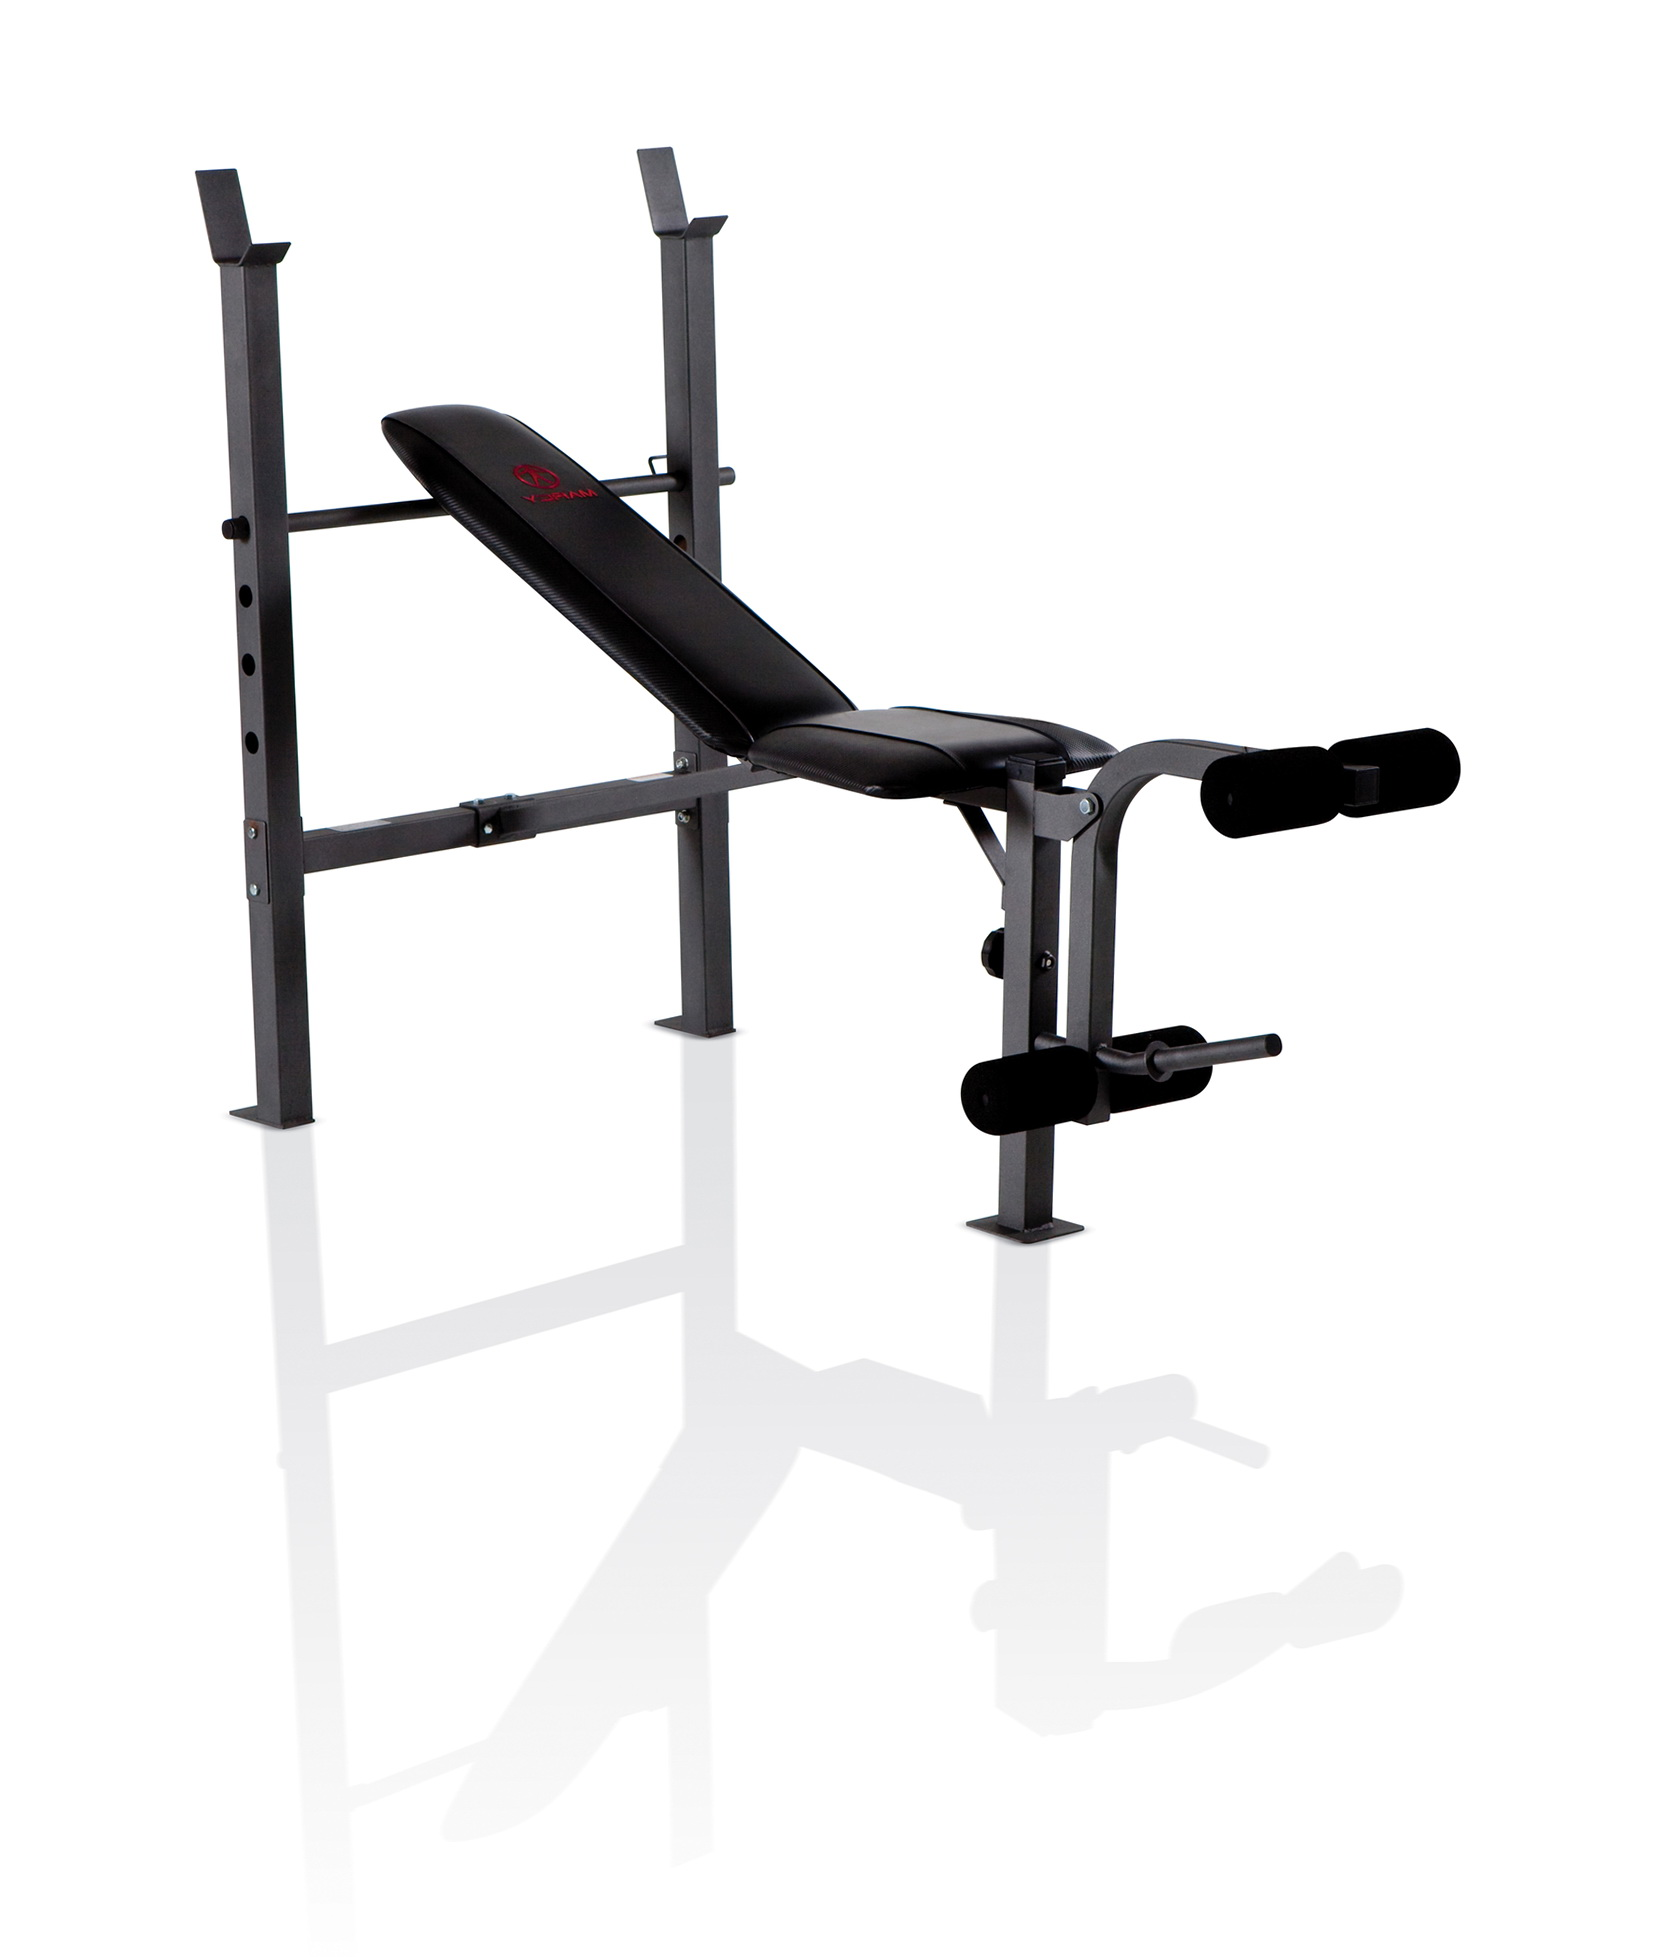 Weight Benches And Weights For Sale 28 Images Benches For Sale Weight Benches Australia